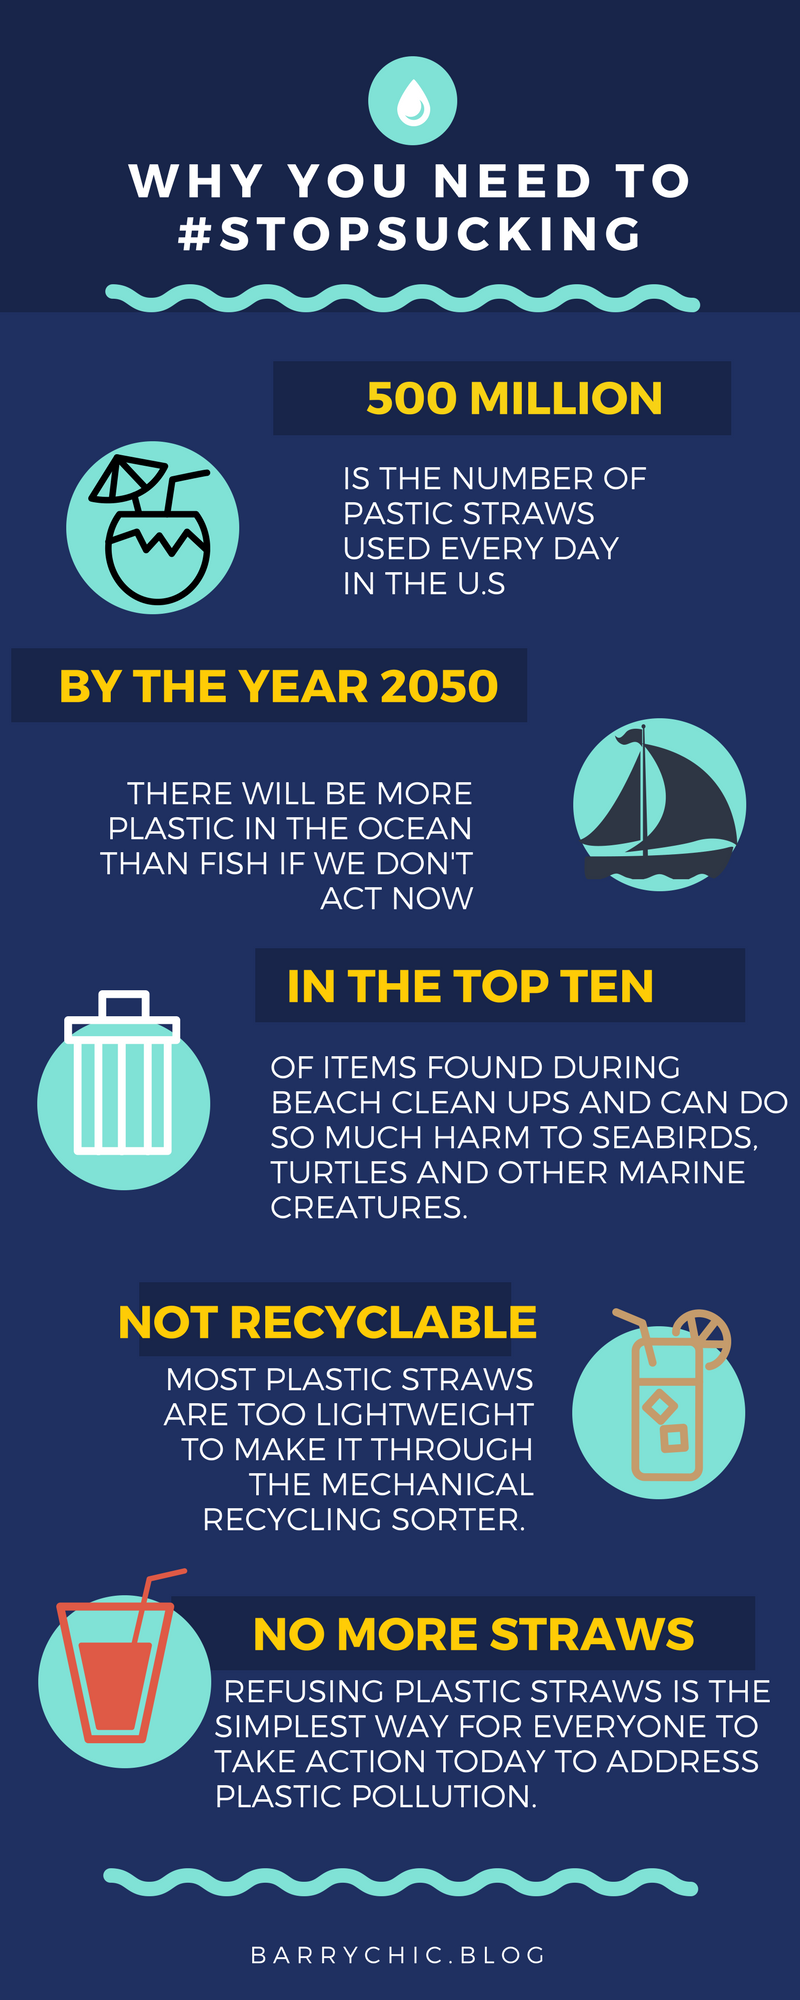 Pin By Claire Grimmett On Sustainability Posters Beach Clean Up